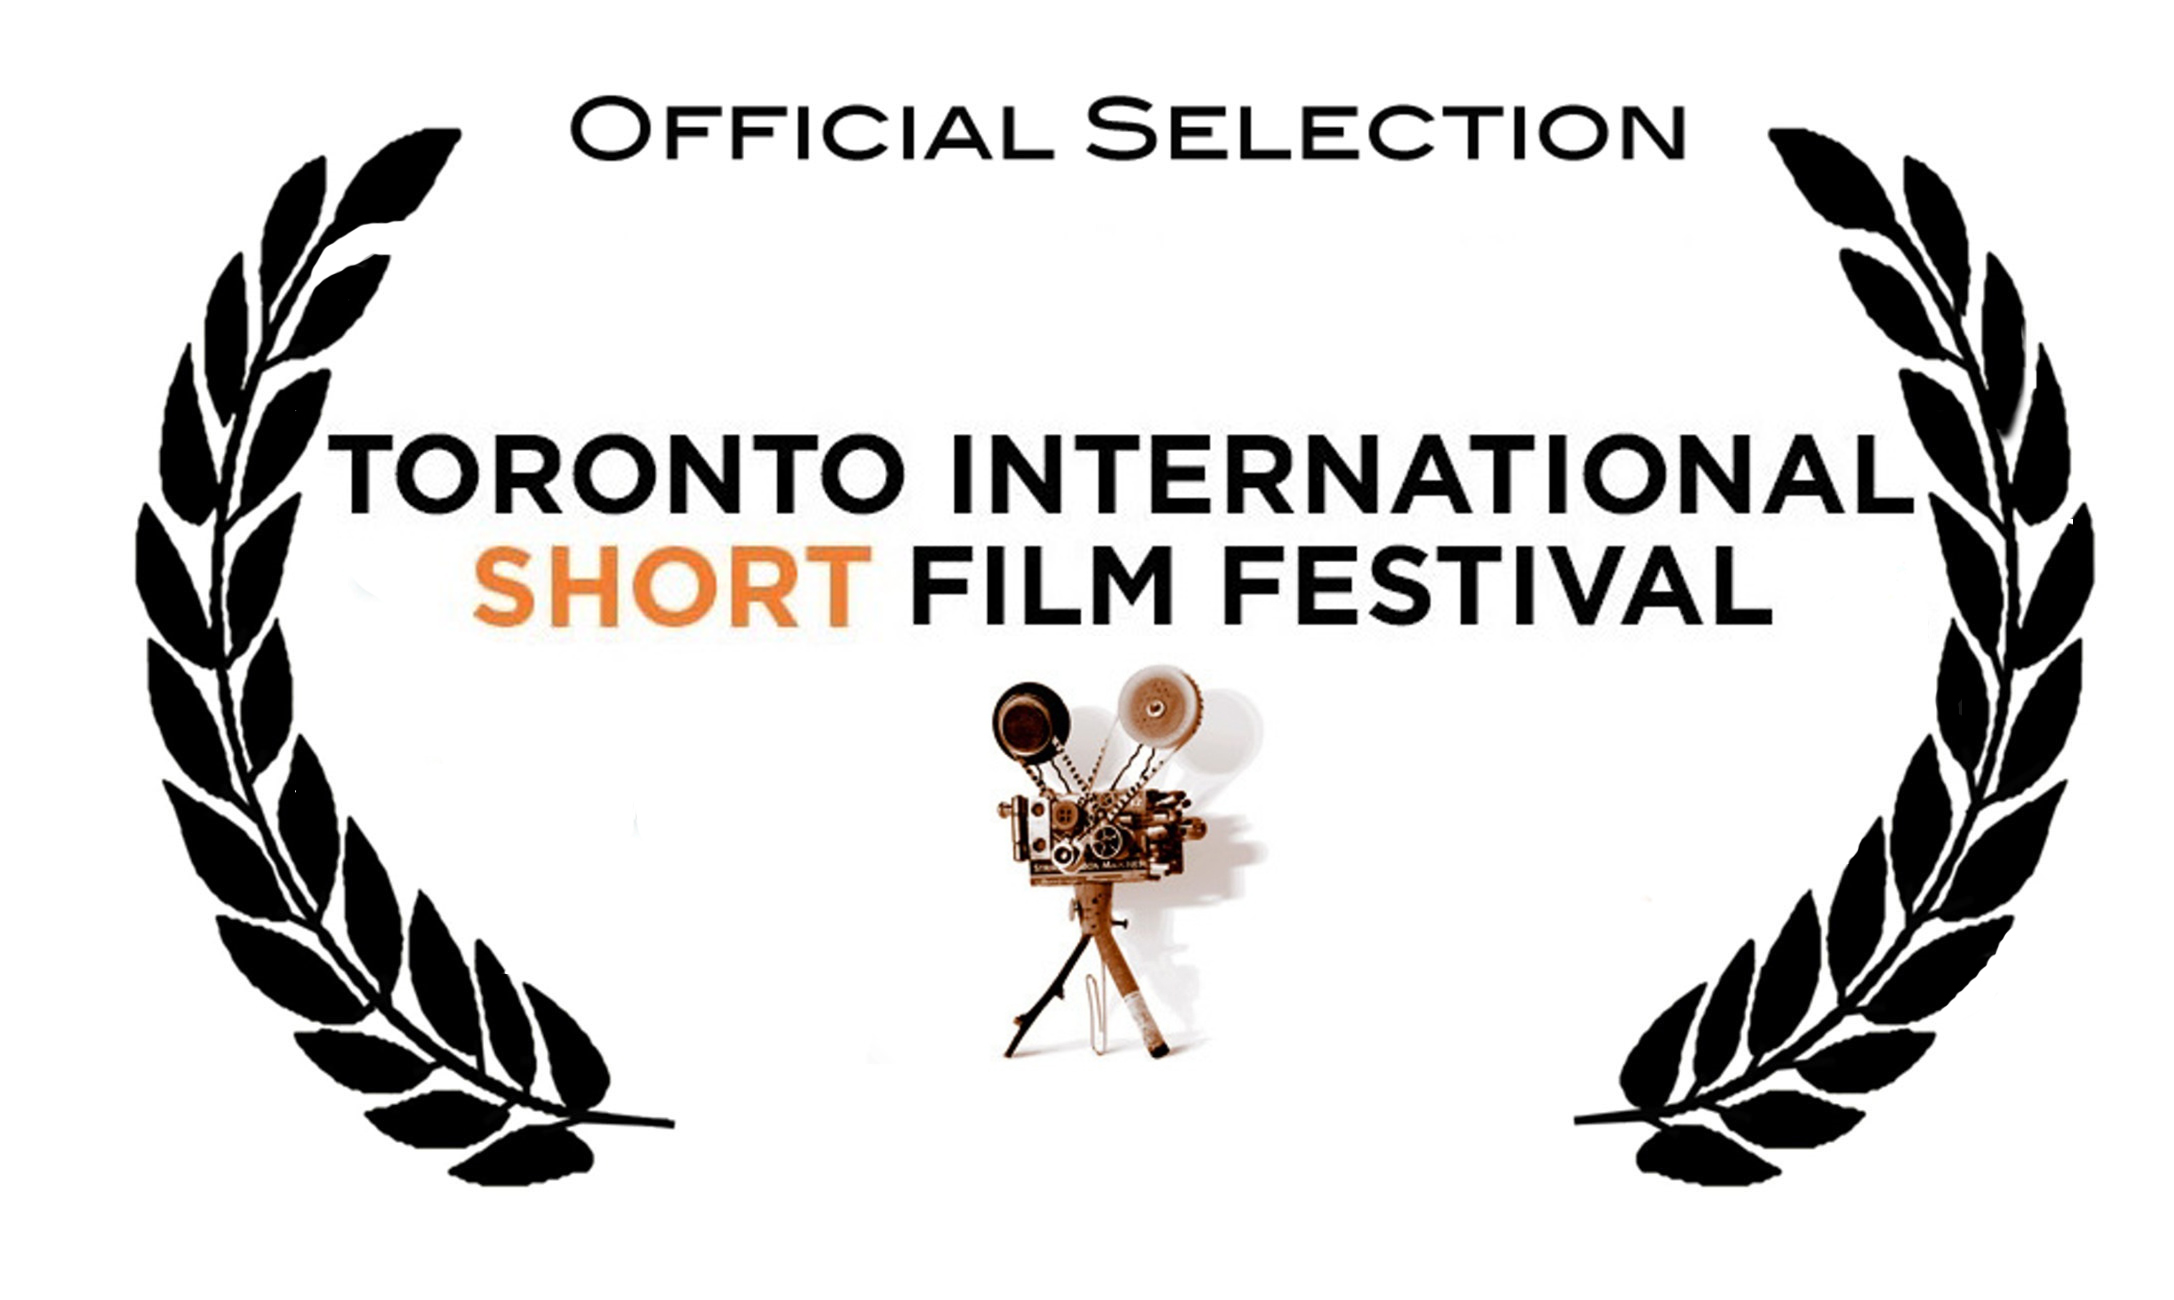 1official-selection-TISFF.jpg